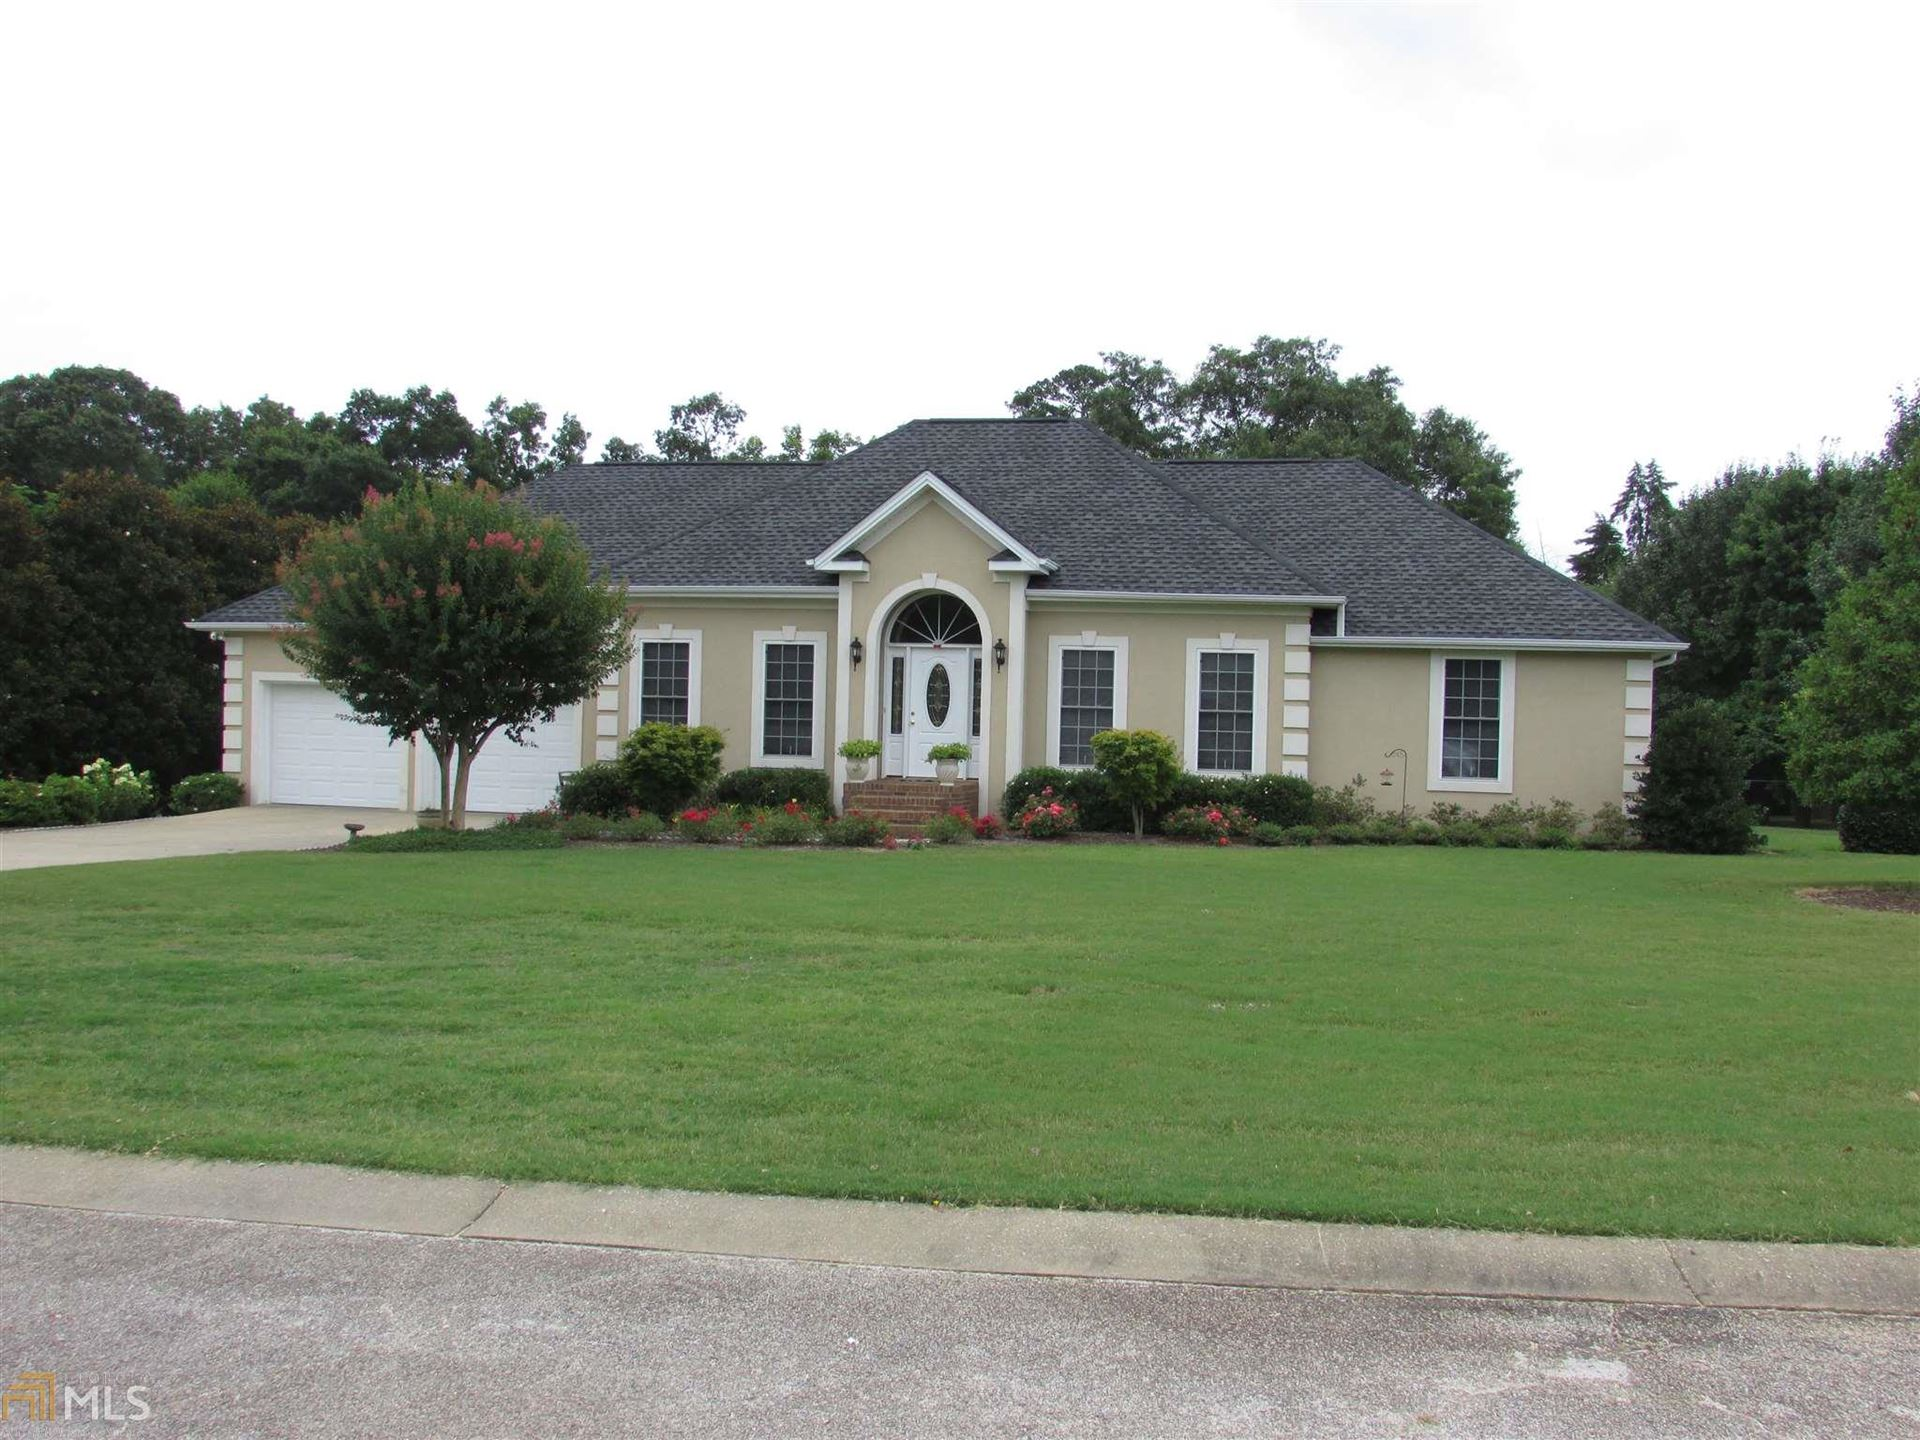 60 Clearview Rd, Hartwell, GA 30643 - MLS#: 8886734